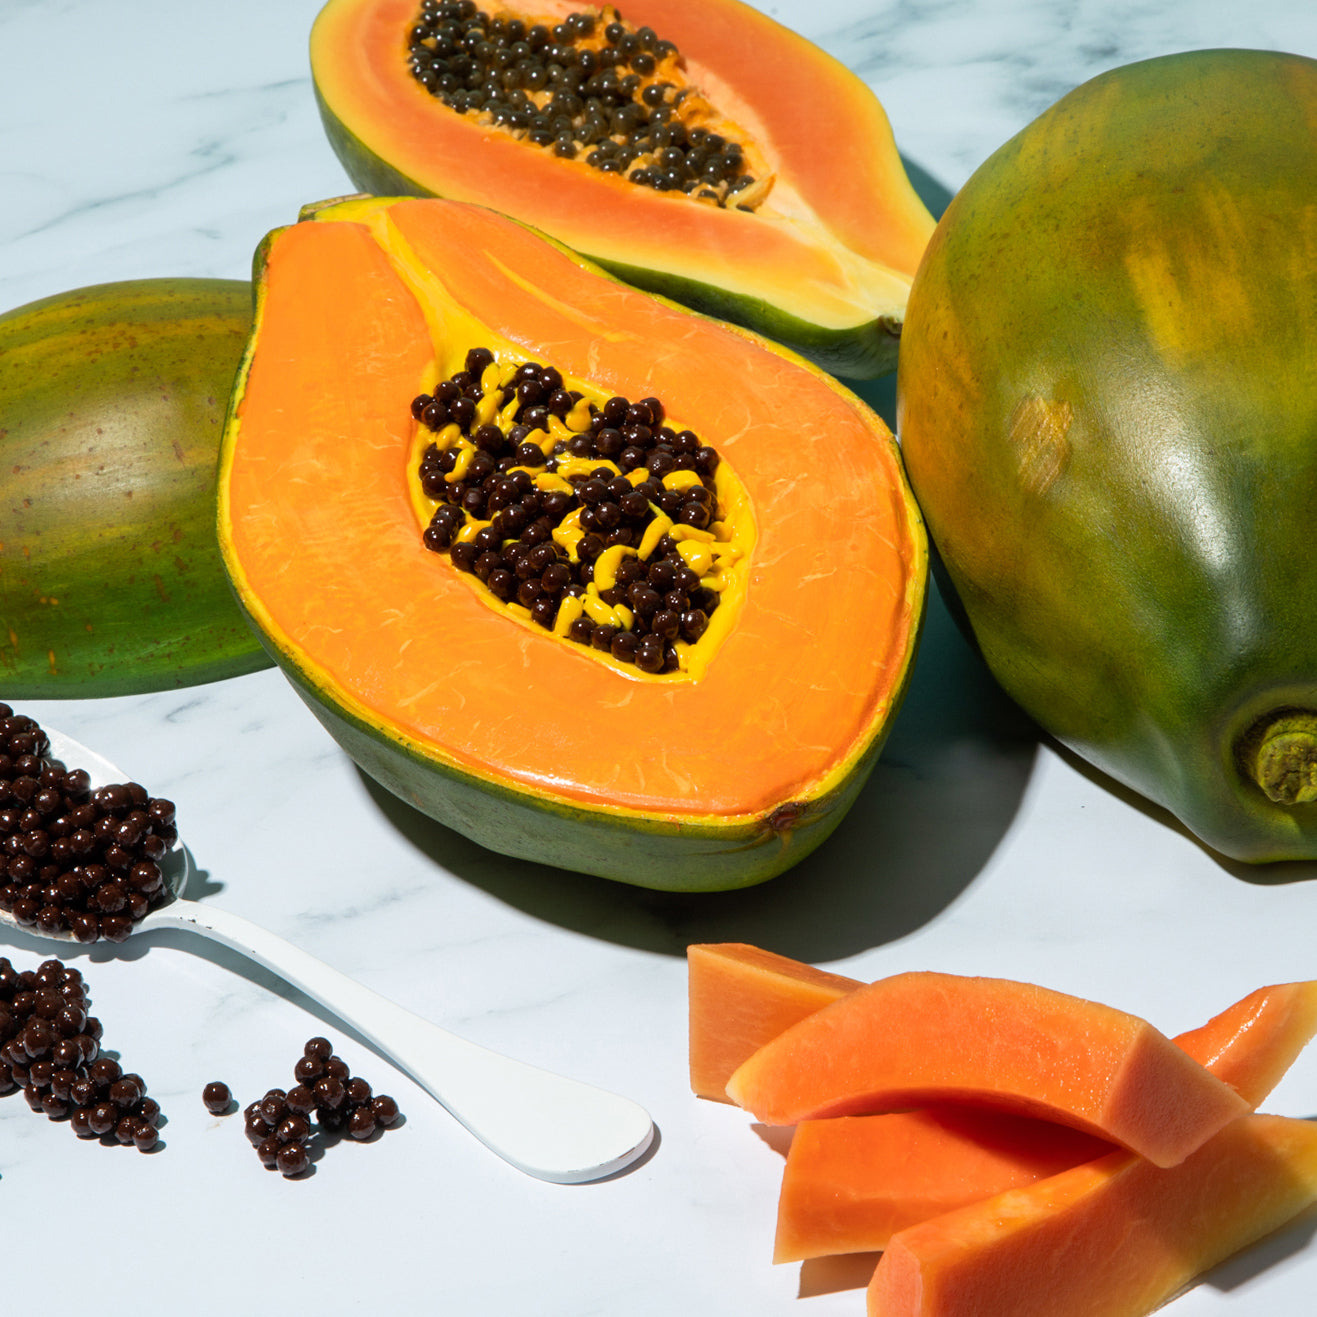 Giant Papayas